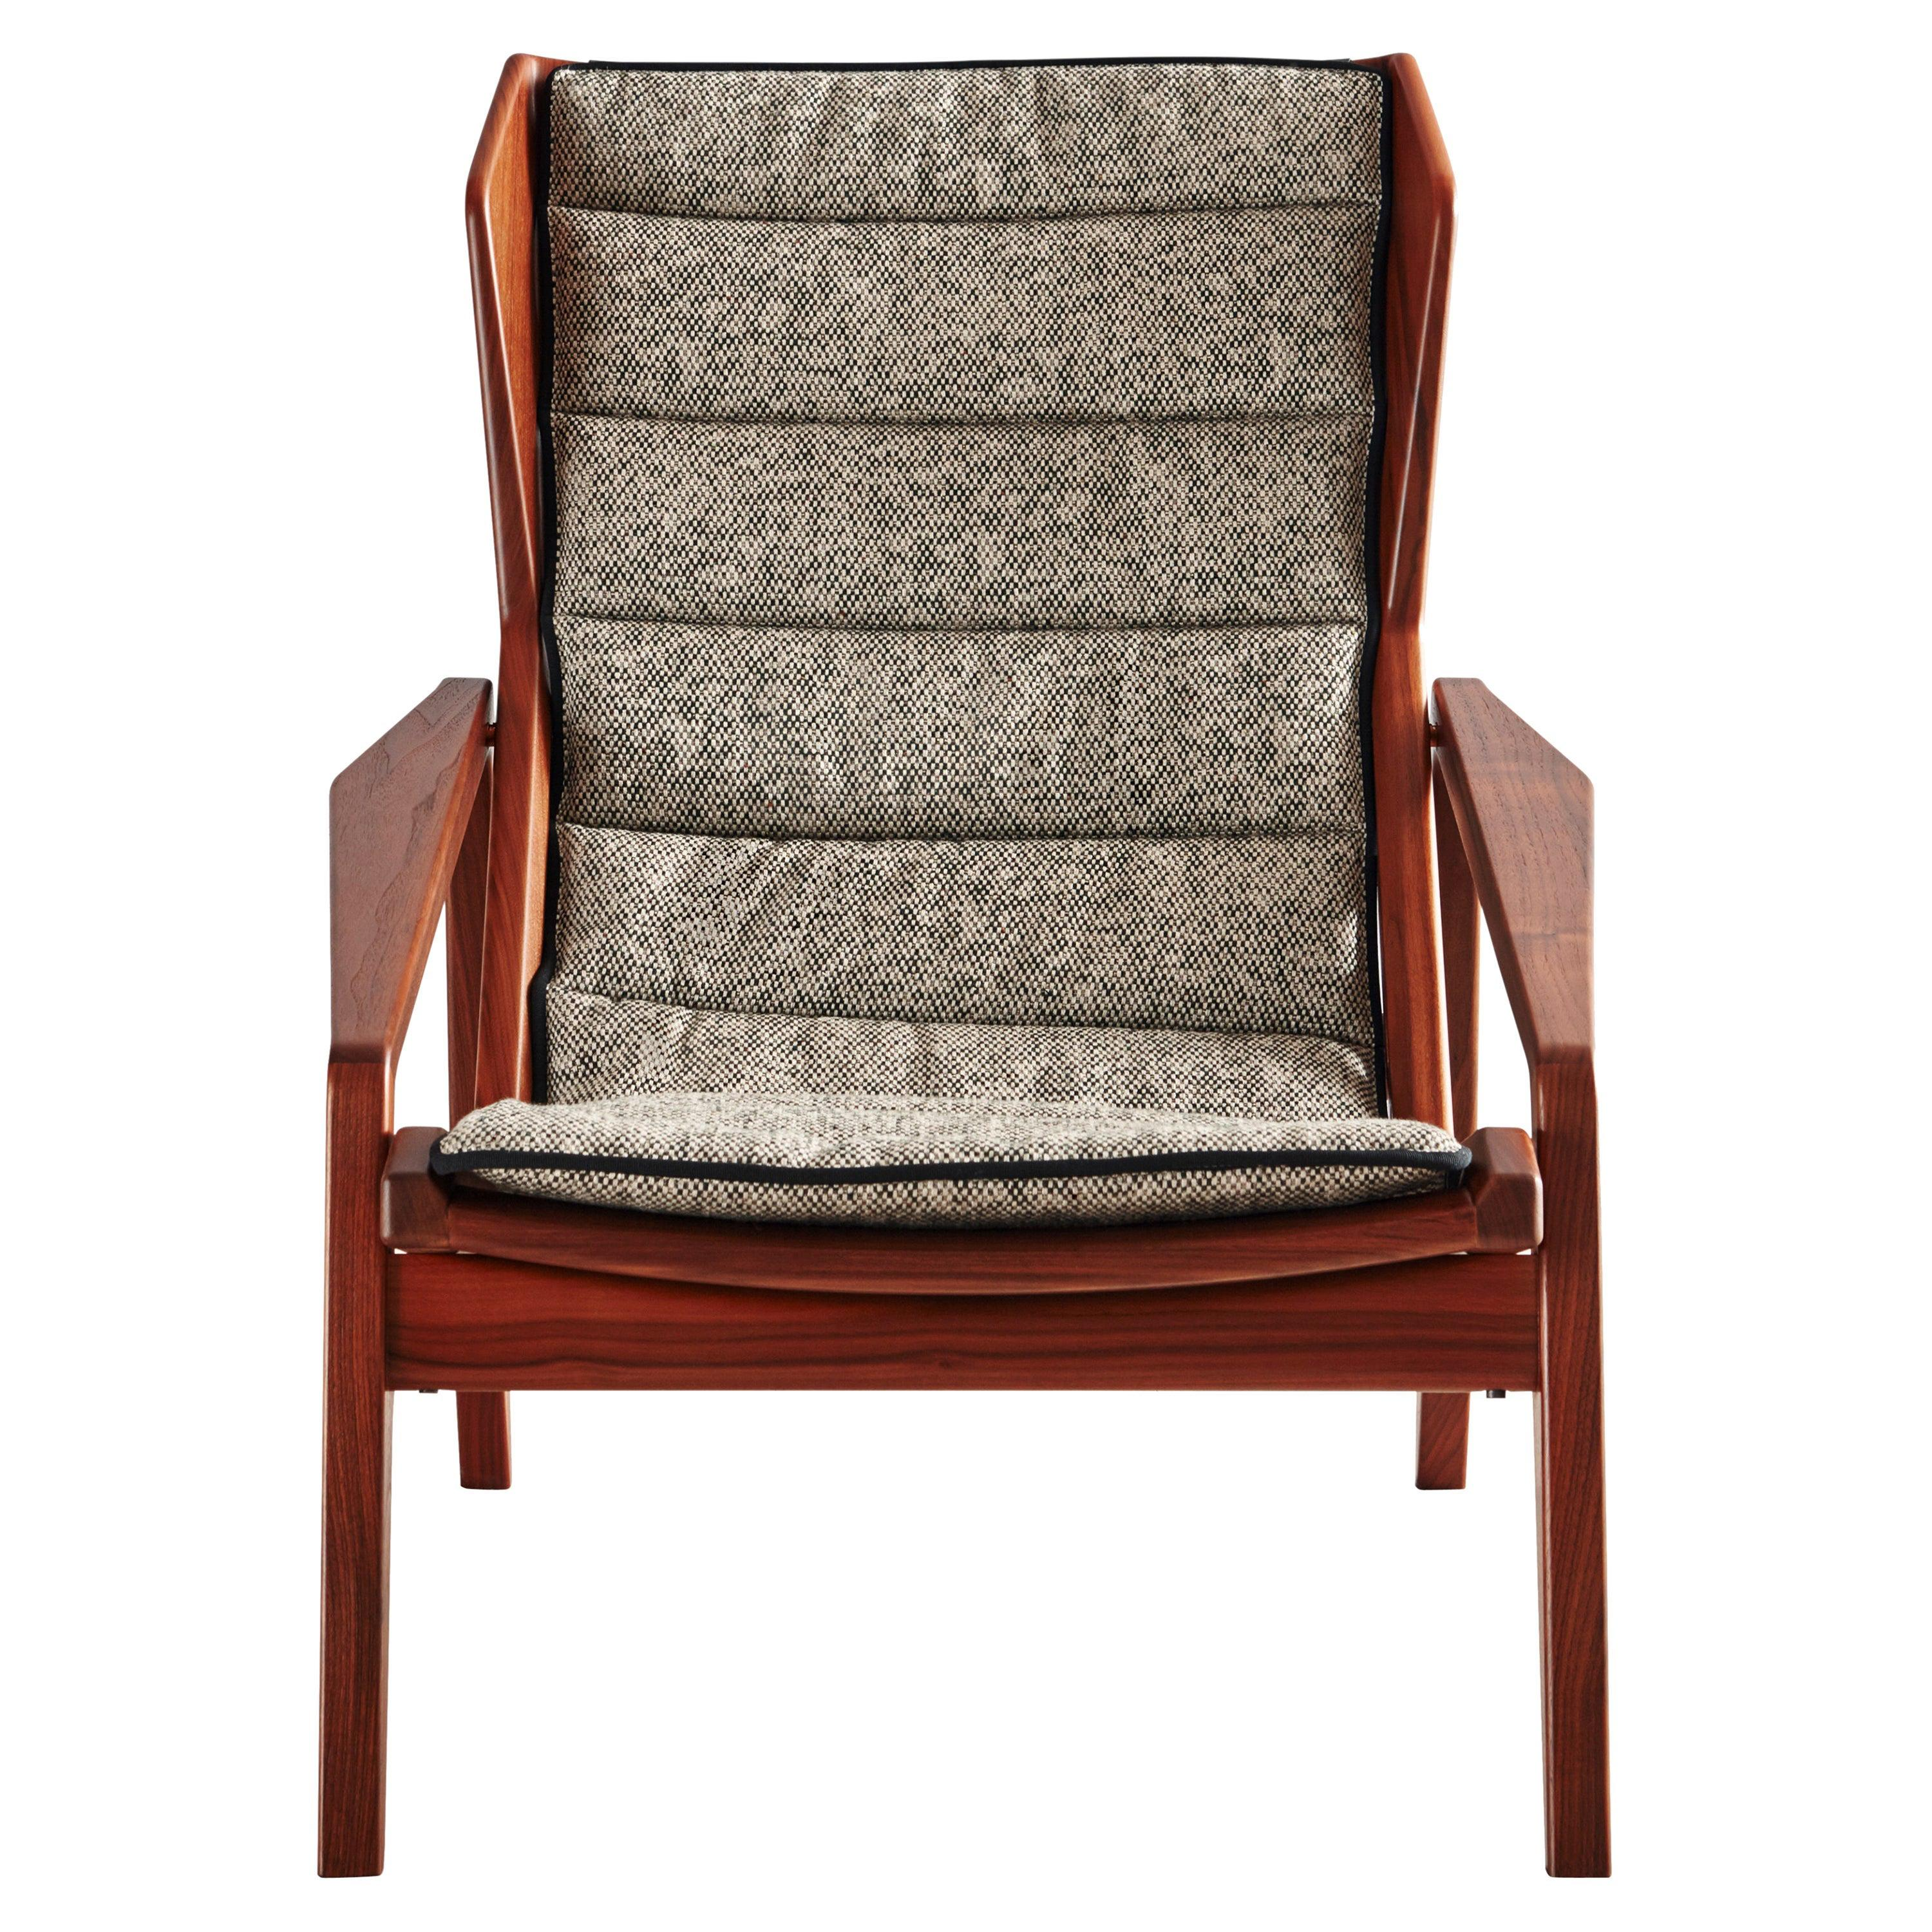 Molteni&C D.156.3 Armchair in American Walnut Frame & Green Canvas by Gio Ponti